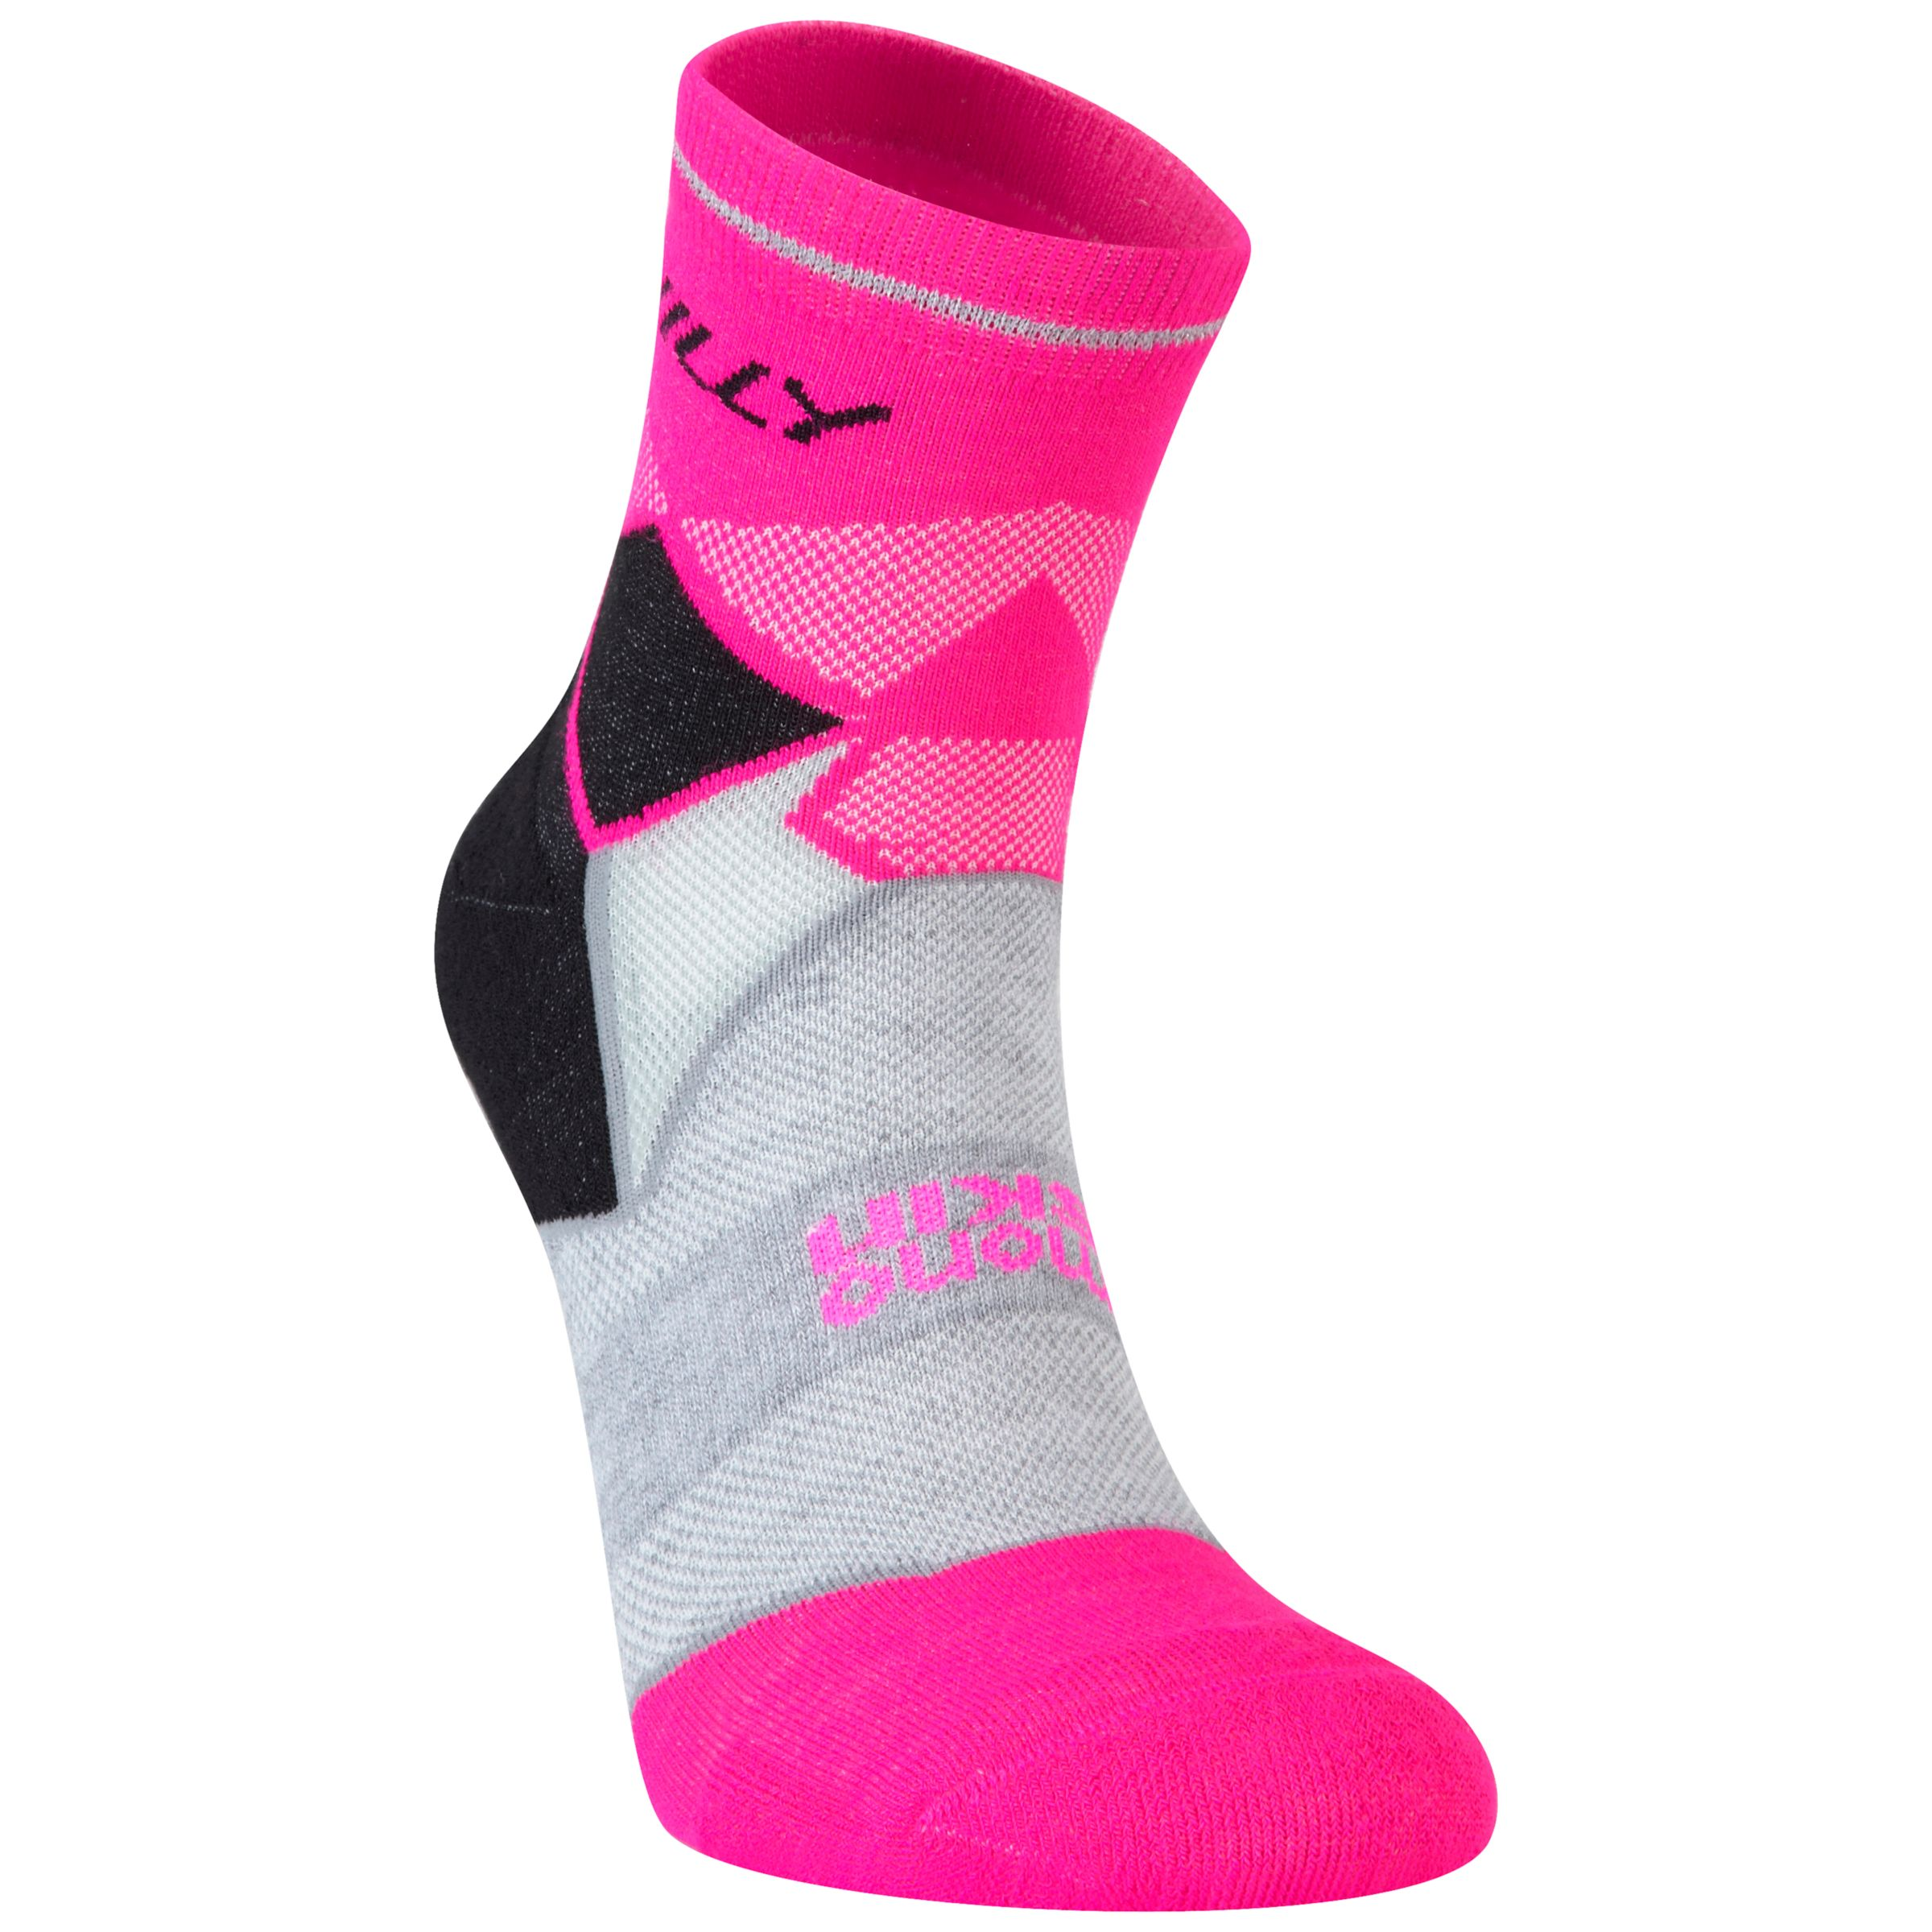 Hilly Hilly Photon Anklet Women's Running Socks, Pink